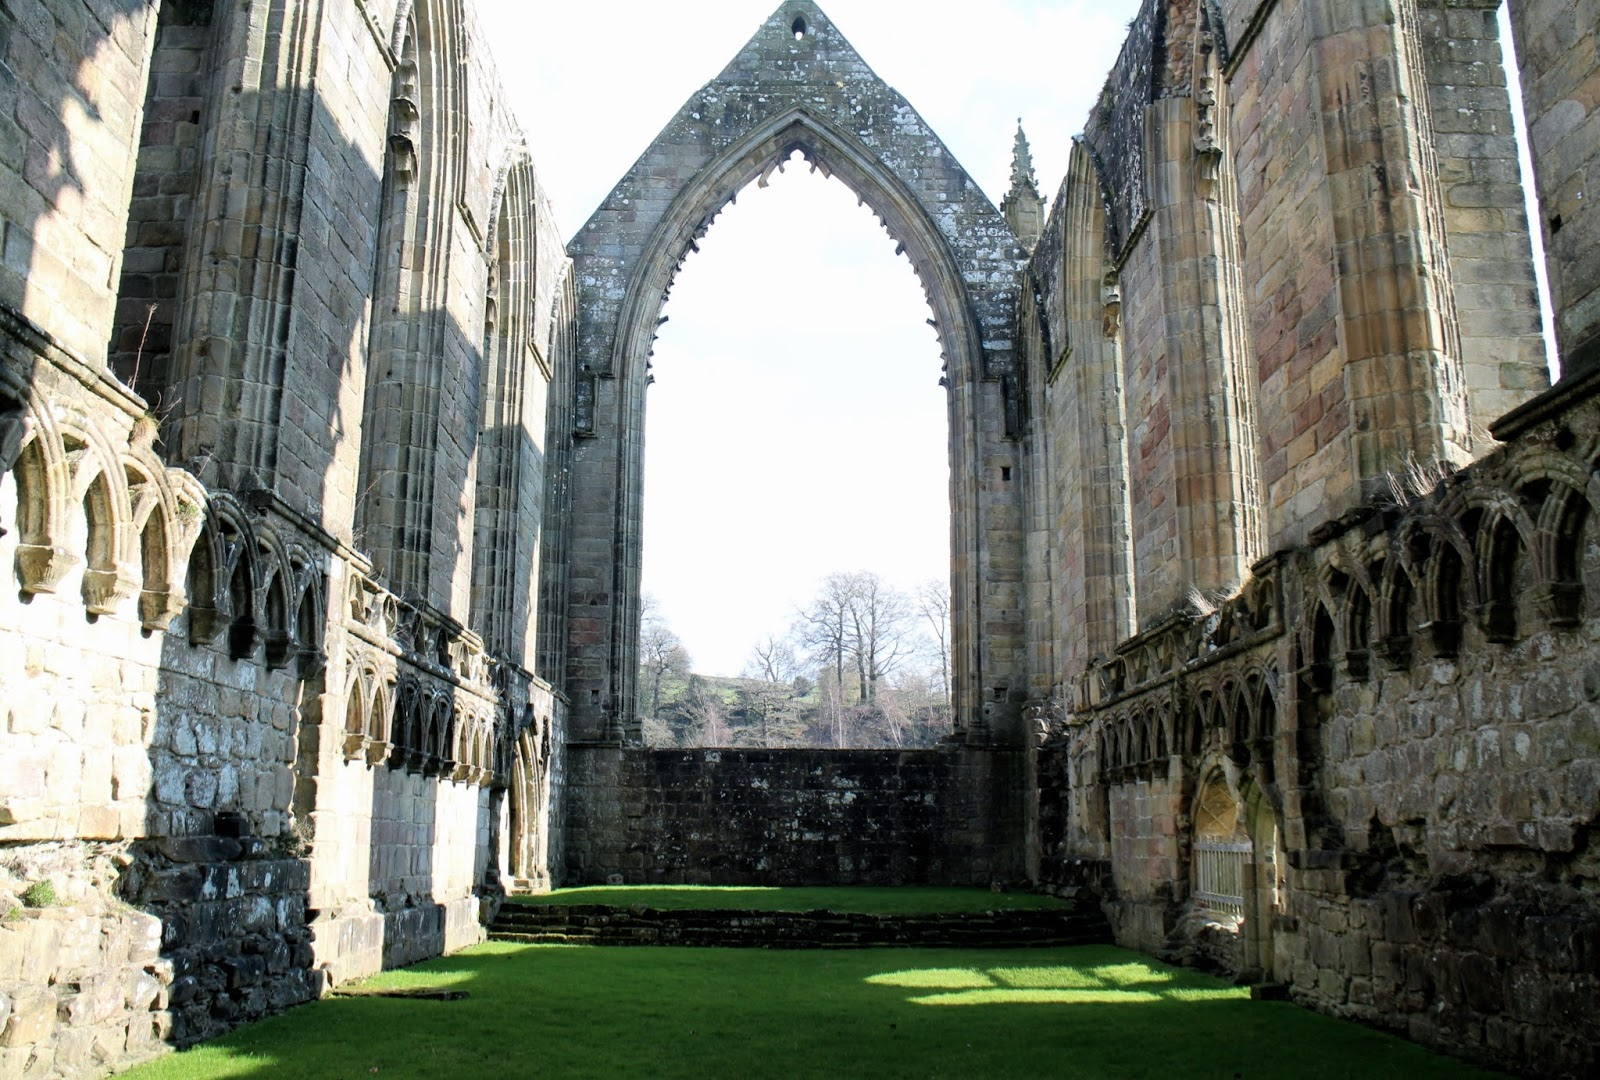 The main arch inside of Bolton Abbey